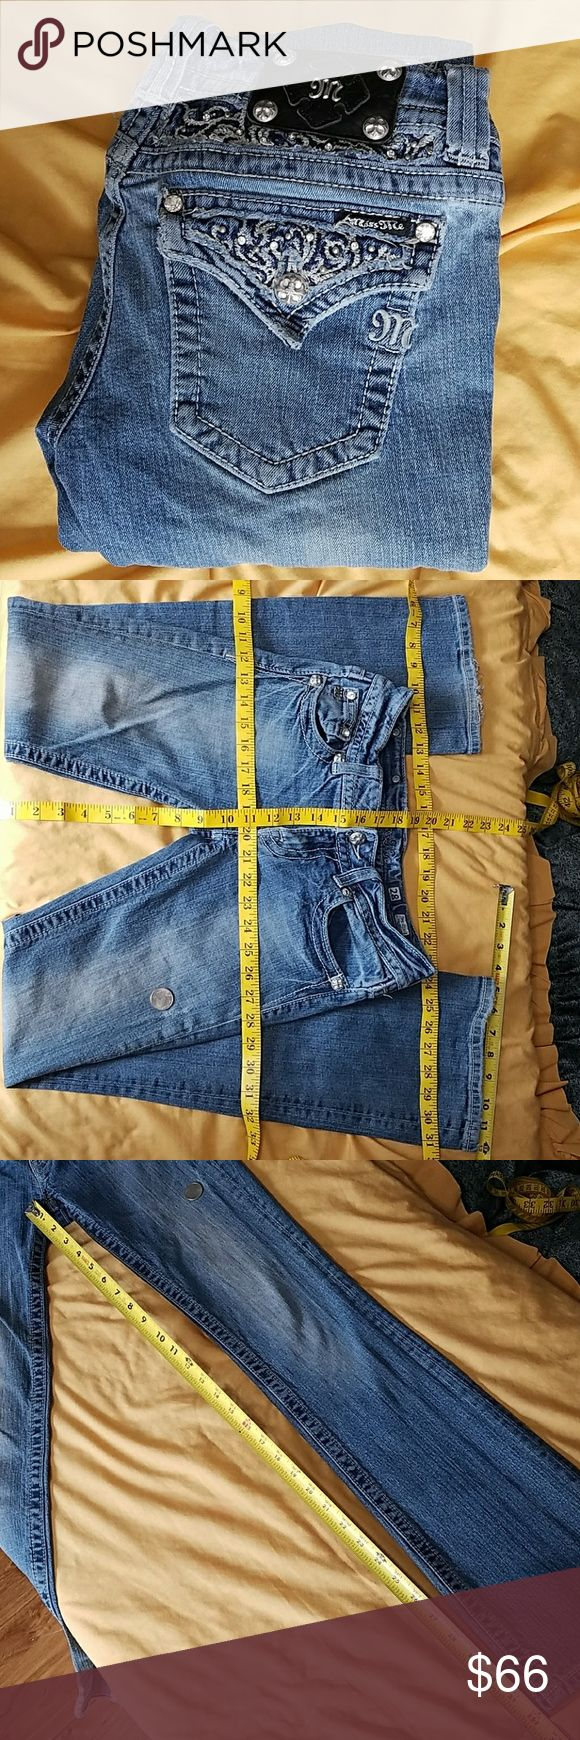 Miss Me Jeans Miss Me Jeans  Lady's  Size 28 JP5002B58 / Boot  Rn 112568 Blue and light blue color, As Is. No returns, really soft broken in feel, Dimound and steel, studded with distressing (looks to be maybe heavy starch or cleaned at the cleaners before, lots if BLING, (back rise seams to be curvy) nonsmoker (some random wher spots) (some Great random distressing) Clean and stored in dark dry storage excellent quality buy with confidence.  Thank you for your purchases.  :) Miss Me Jeans…